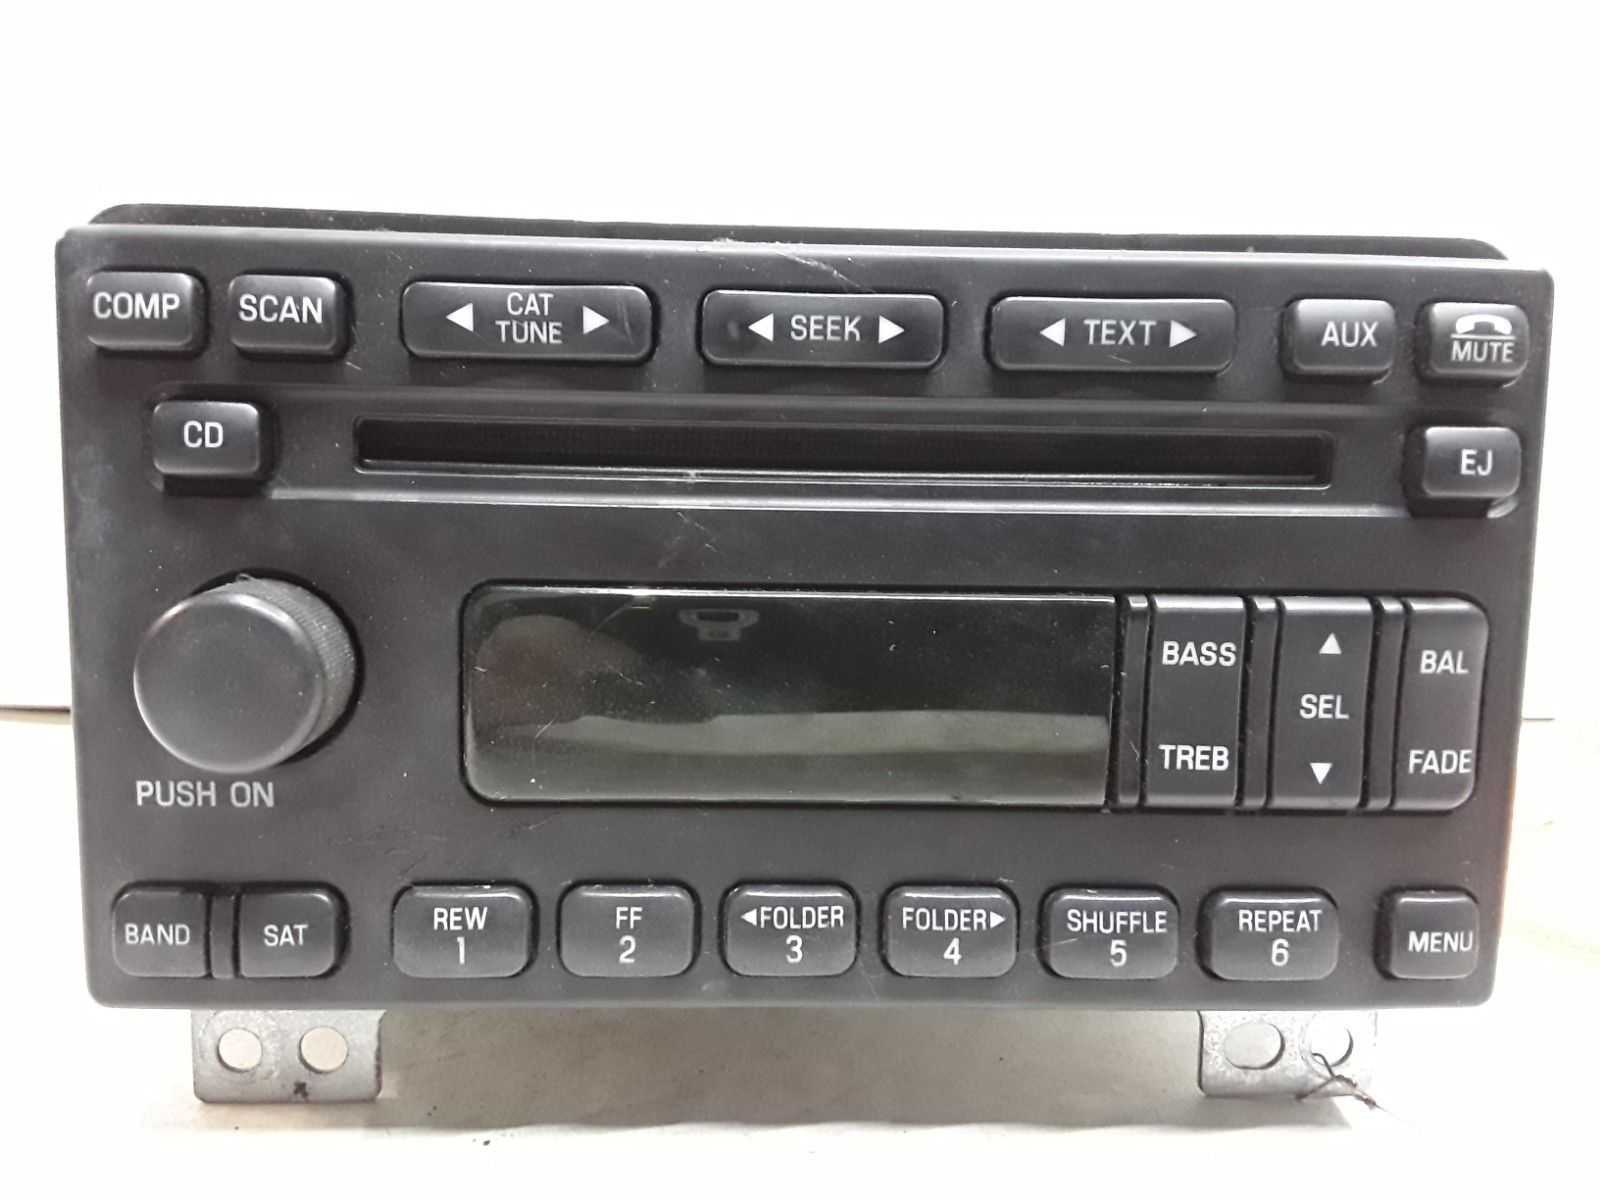 Primary image for 05 2005 Mercury Mountaineer Ford Explorer AM FM XM CD MP3 radio receiver OEM